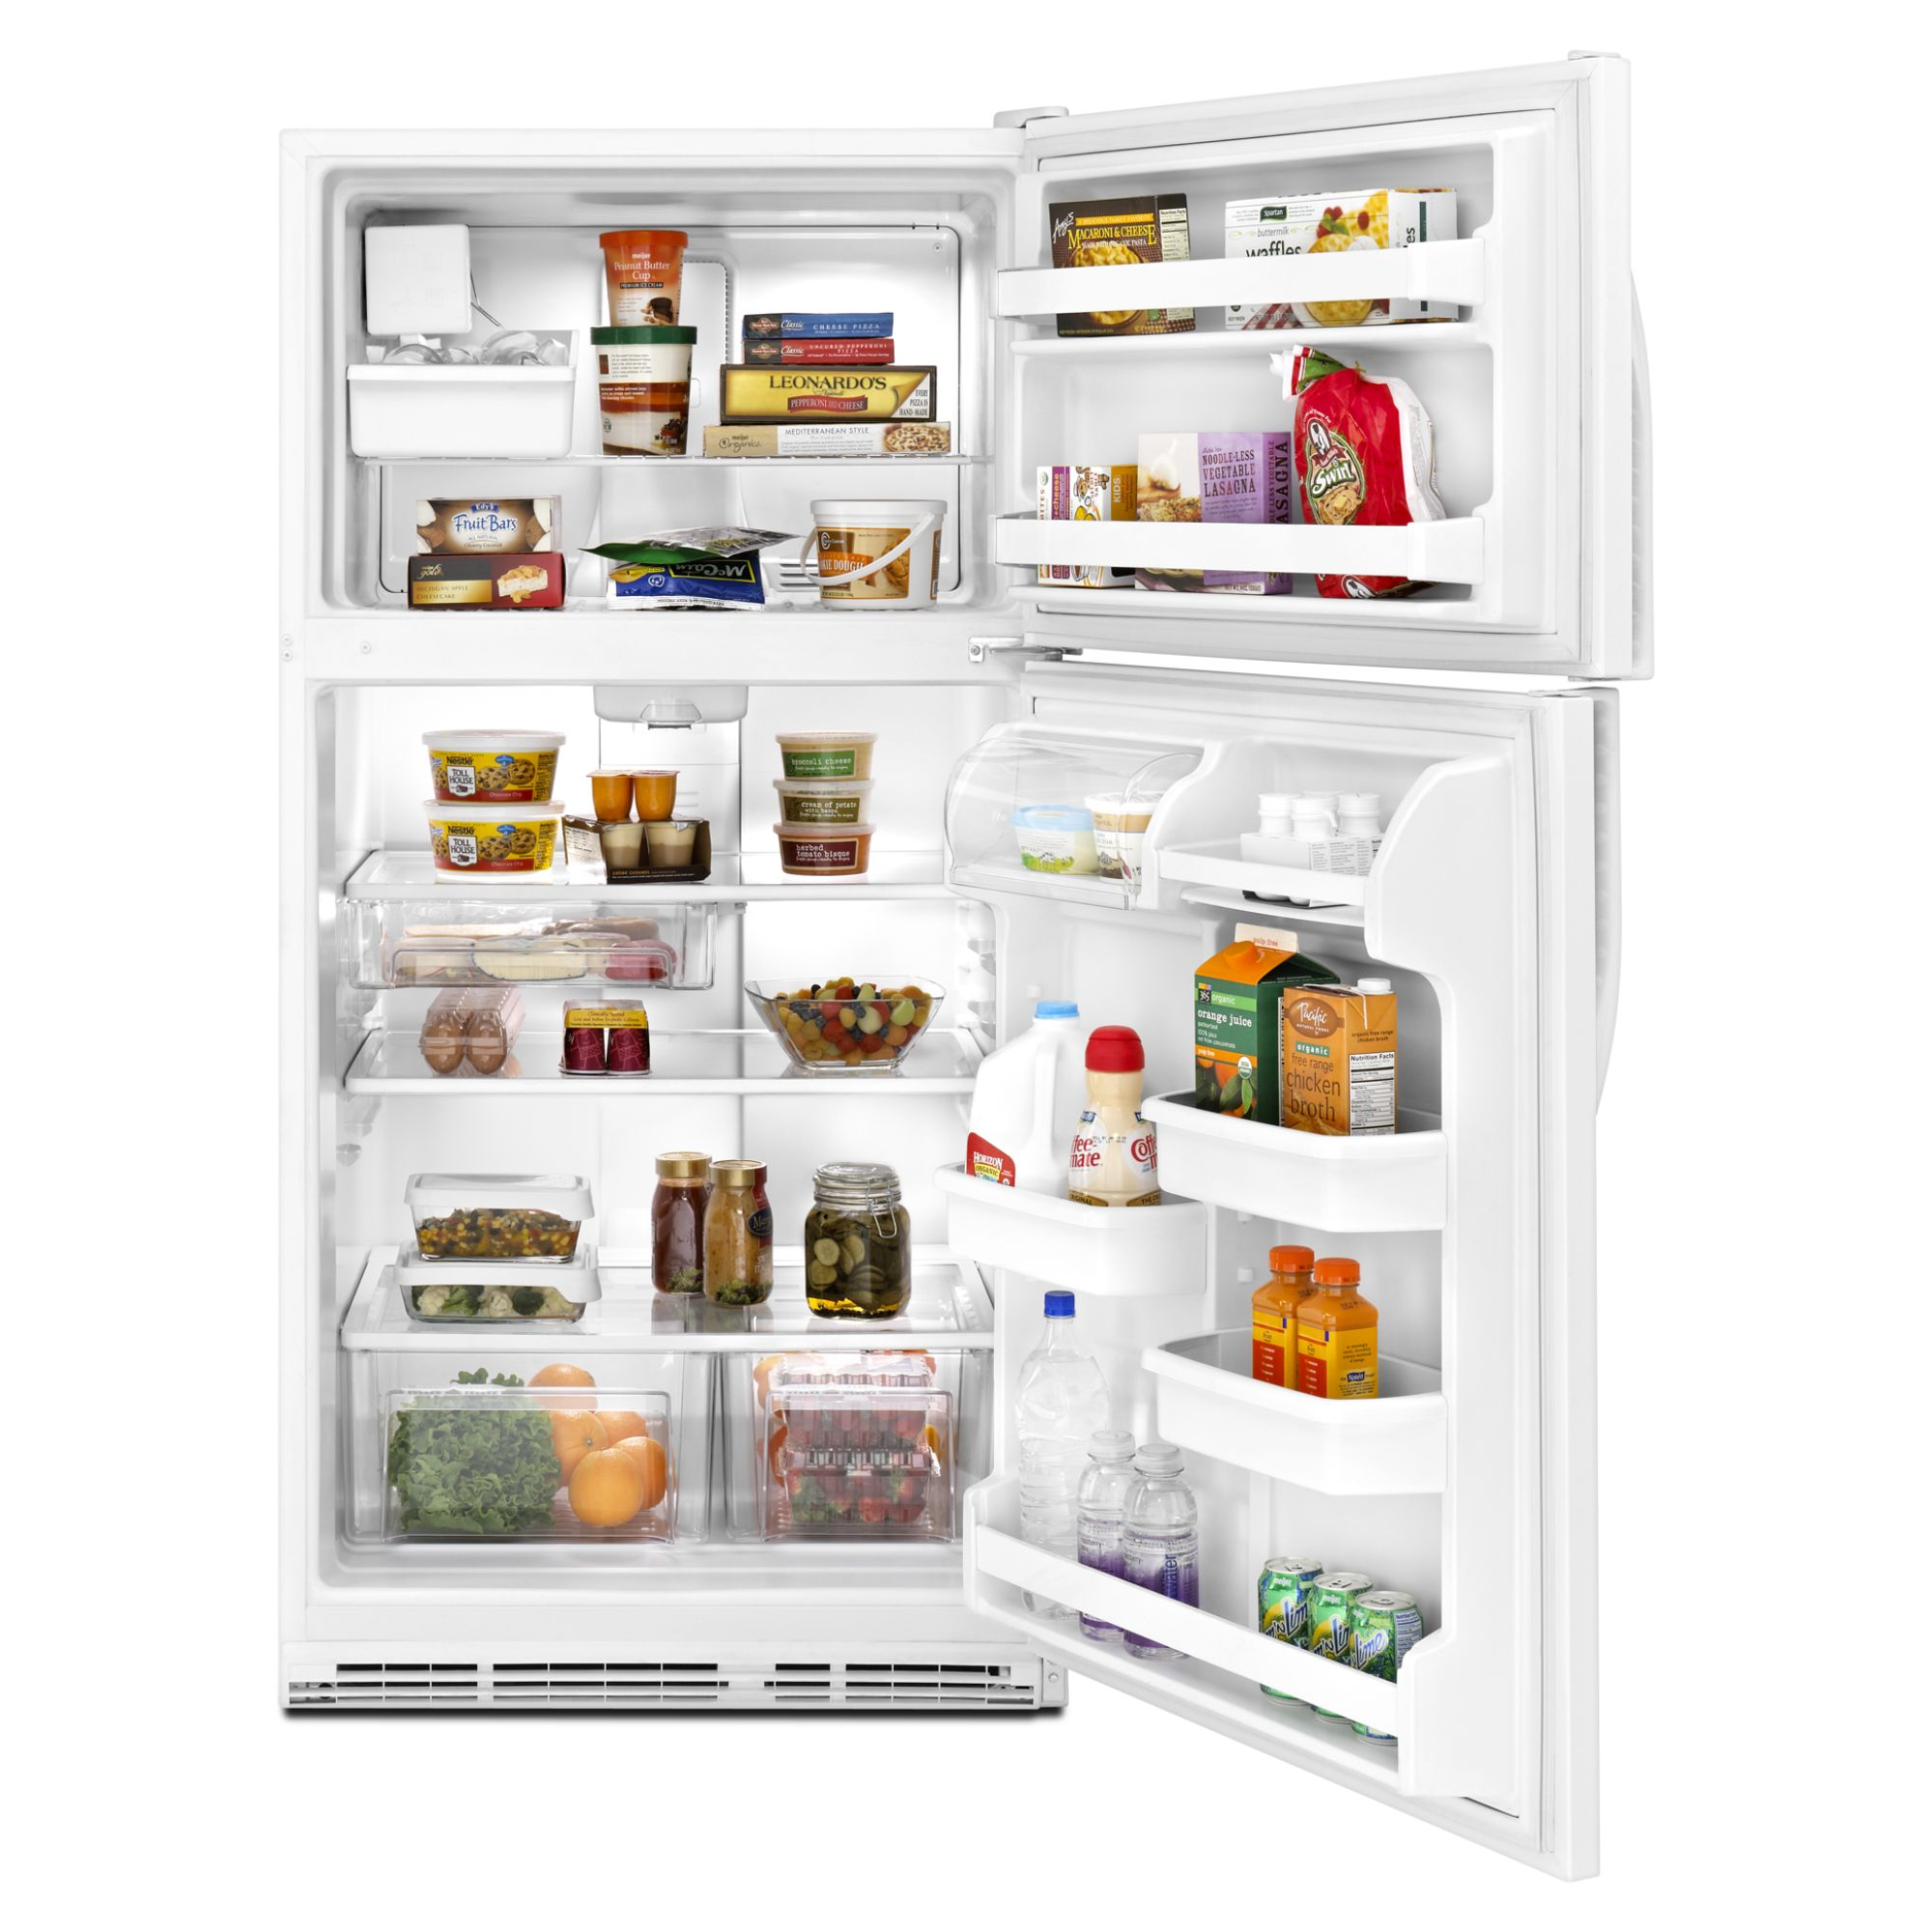 Kenmore 21.0 cu. ft. Top-Freezer Refrigerator w/ Ice Maker - White